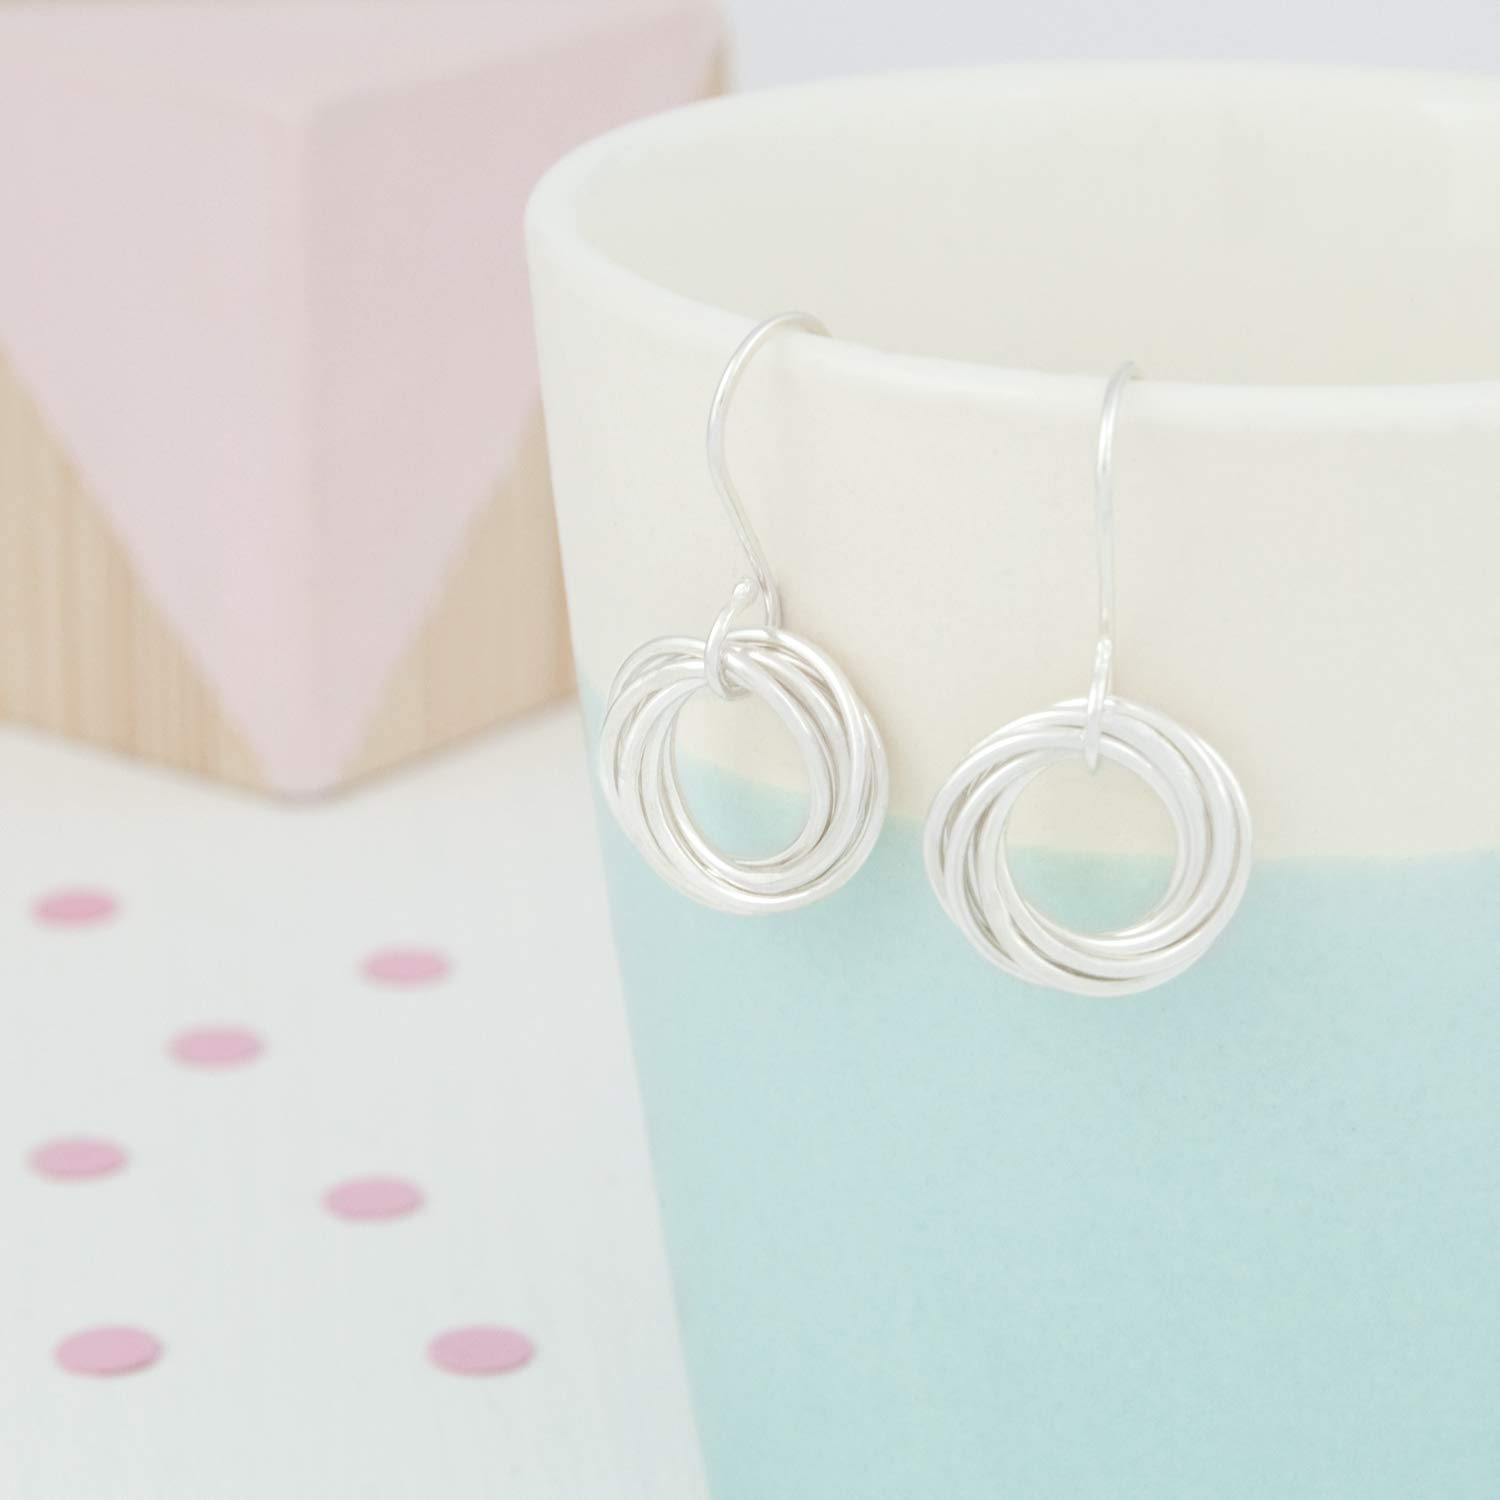 60th Birthday Gift For Her 60th Birthday Earrings with 6 Rings For 6 Decades